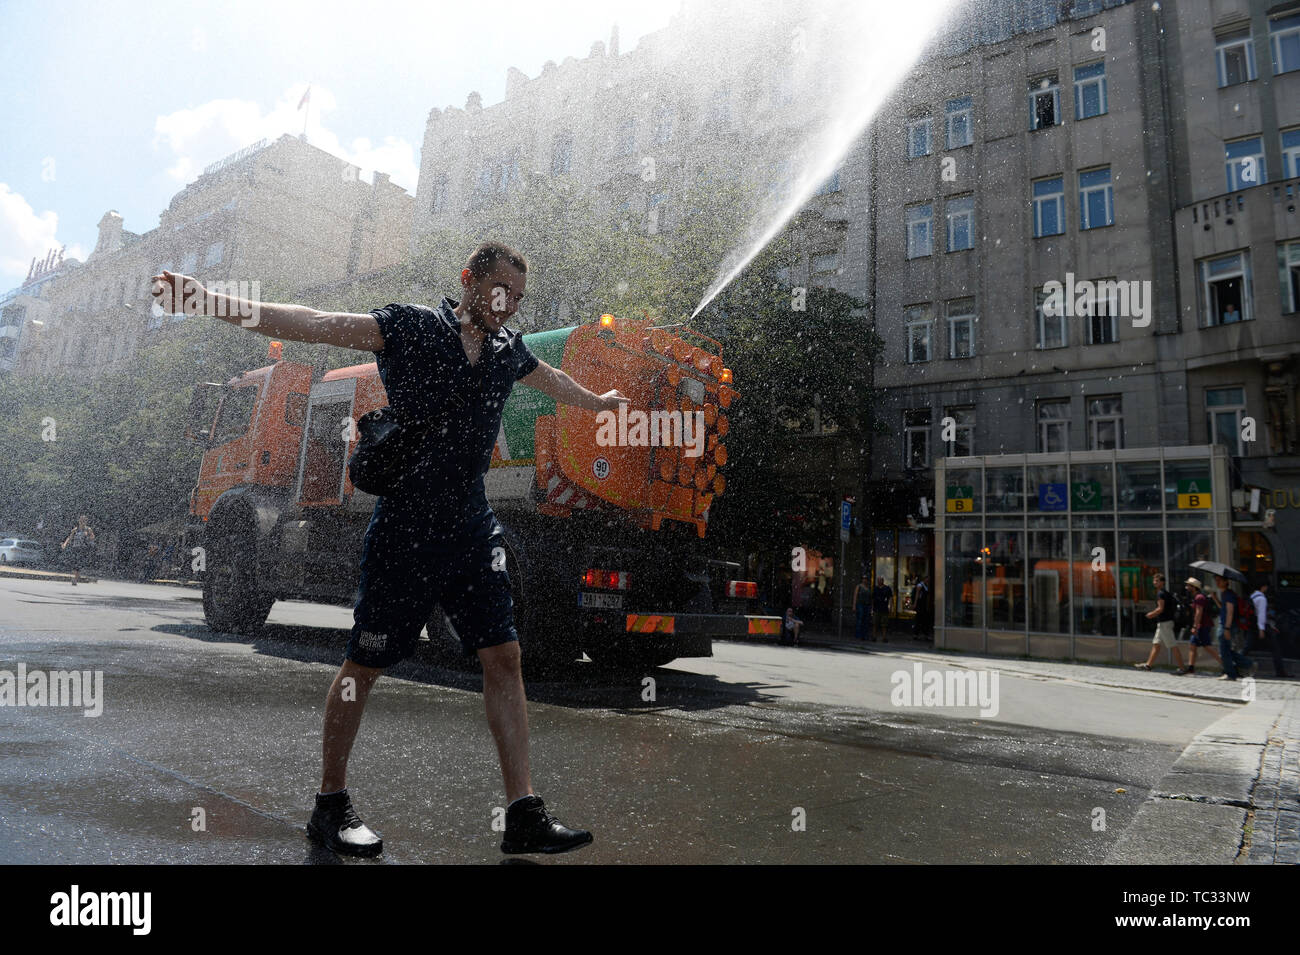 Prague, Czech Republic. 05th June, 2019. A tank truck of the 'Technical Road Administration Prague' (TSK) sprinkles by water the Wenceslas Square in Prague, Czech Republic, on June 5, 2019. Trucks go out whenever three days in a row the temperature exceeds 25 degrees Celsius. Credit: Katerina Sulova/CTK Photo/Alamy Live News - Stock Image